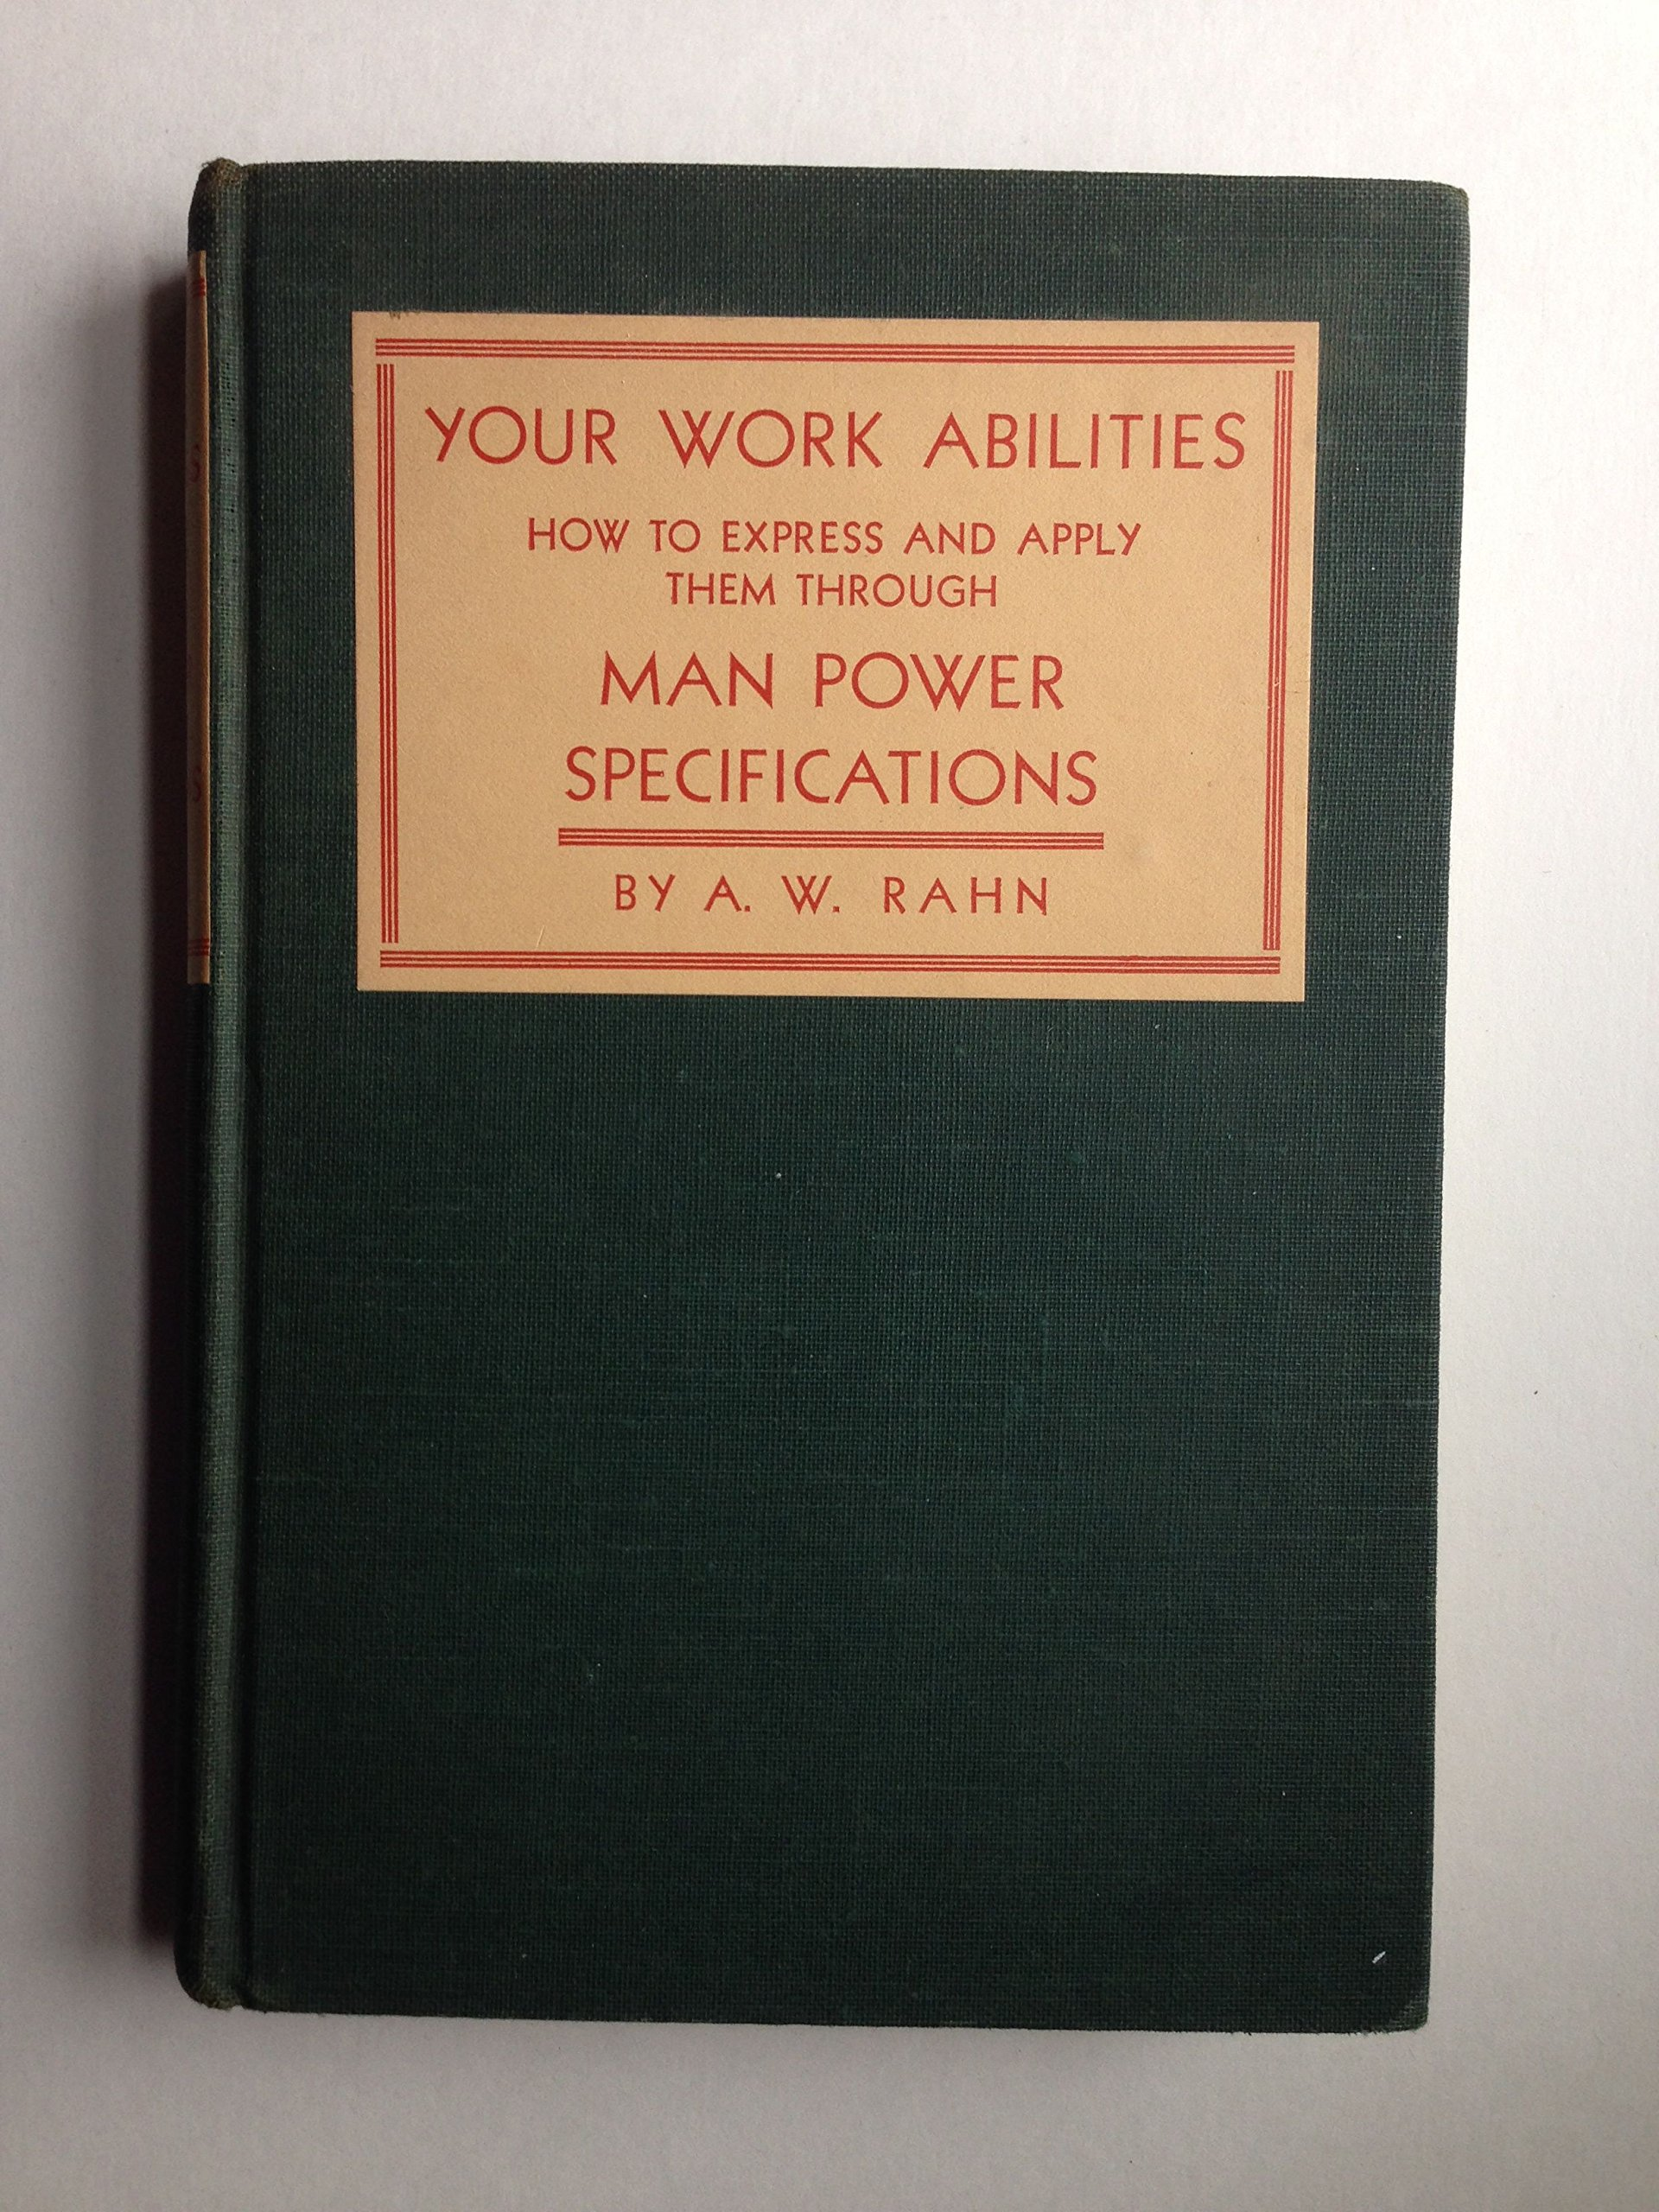 your work abilities how to express and apply them through man your work abilities how to express and apply them through man power specifications alphonso william rahn com books